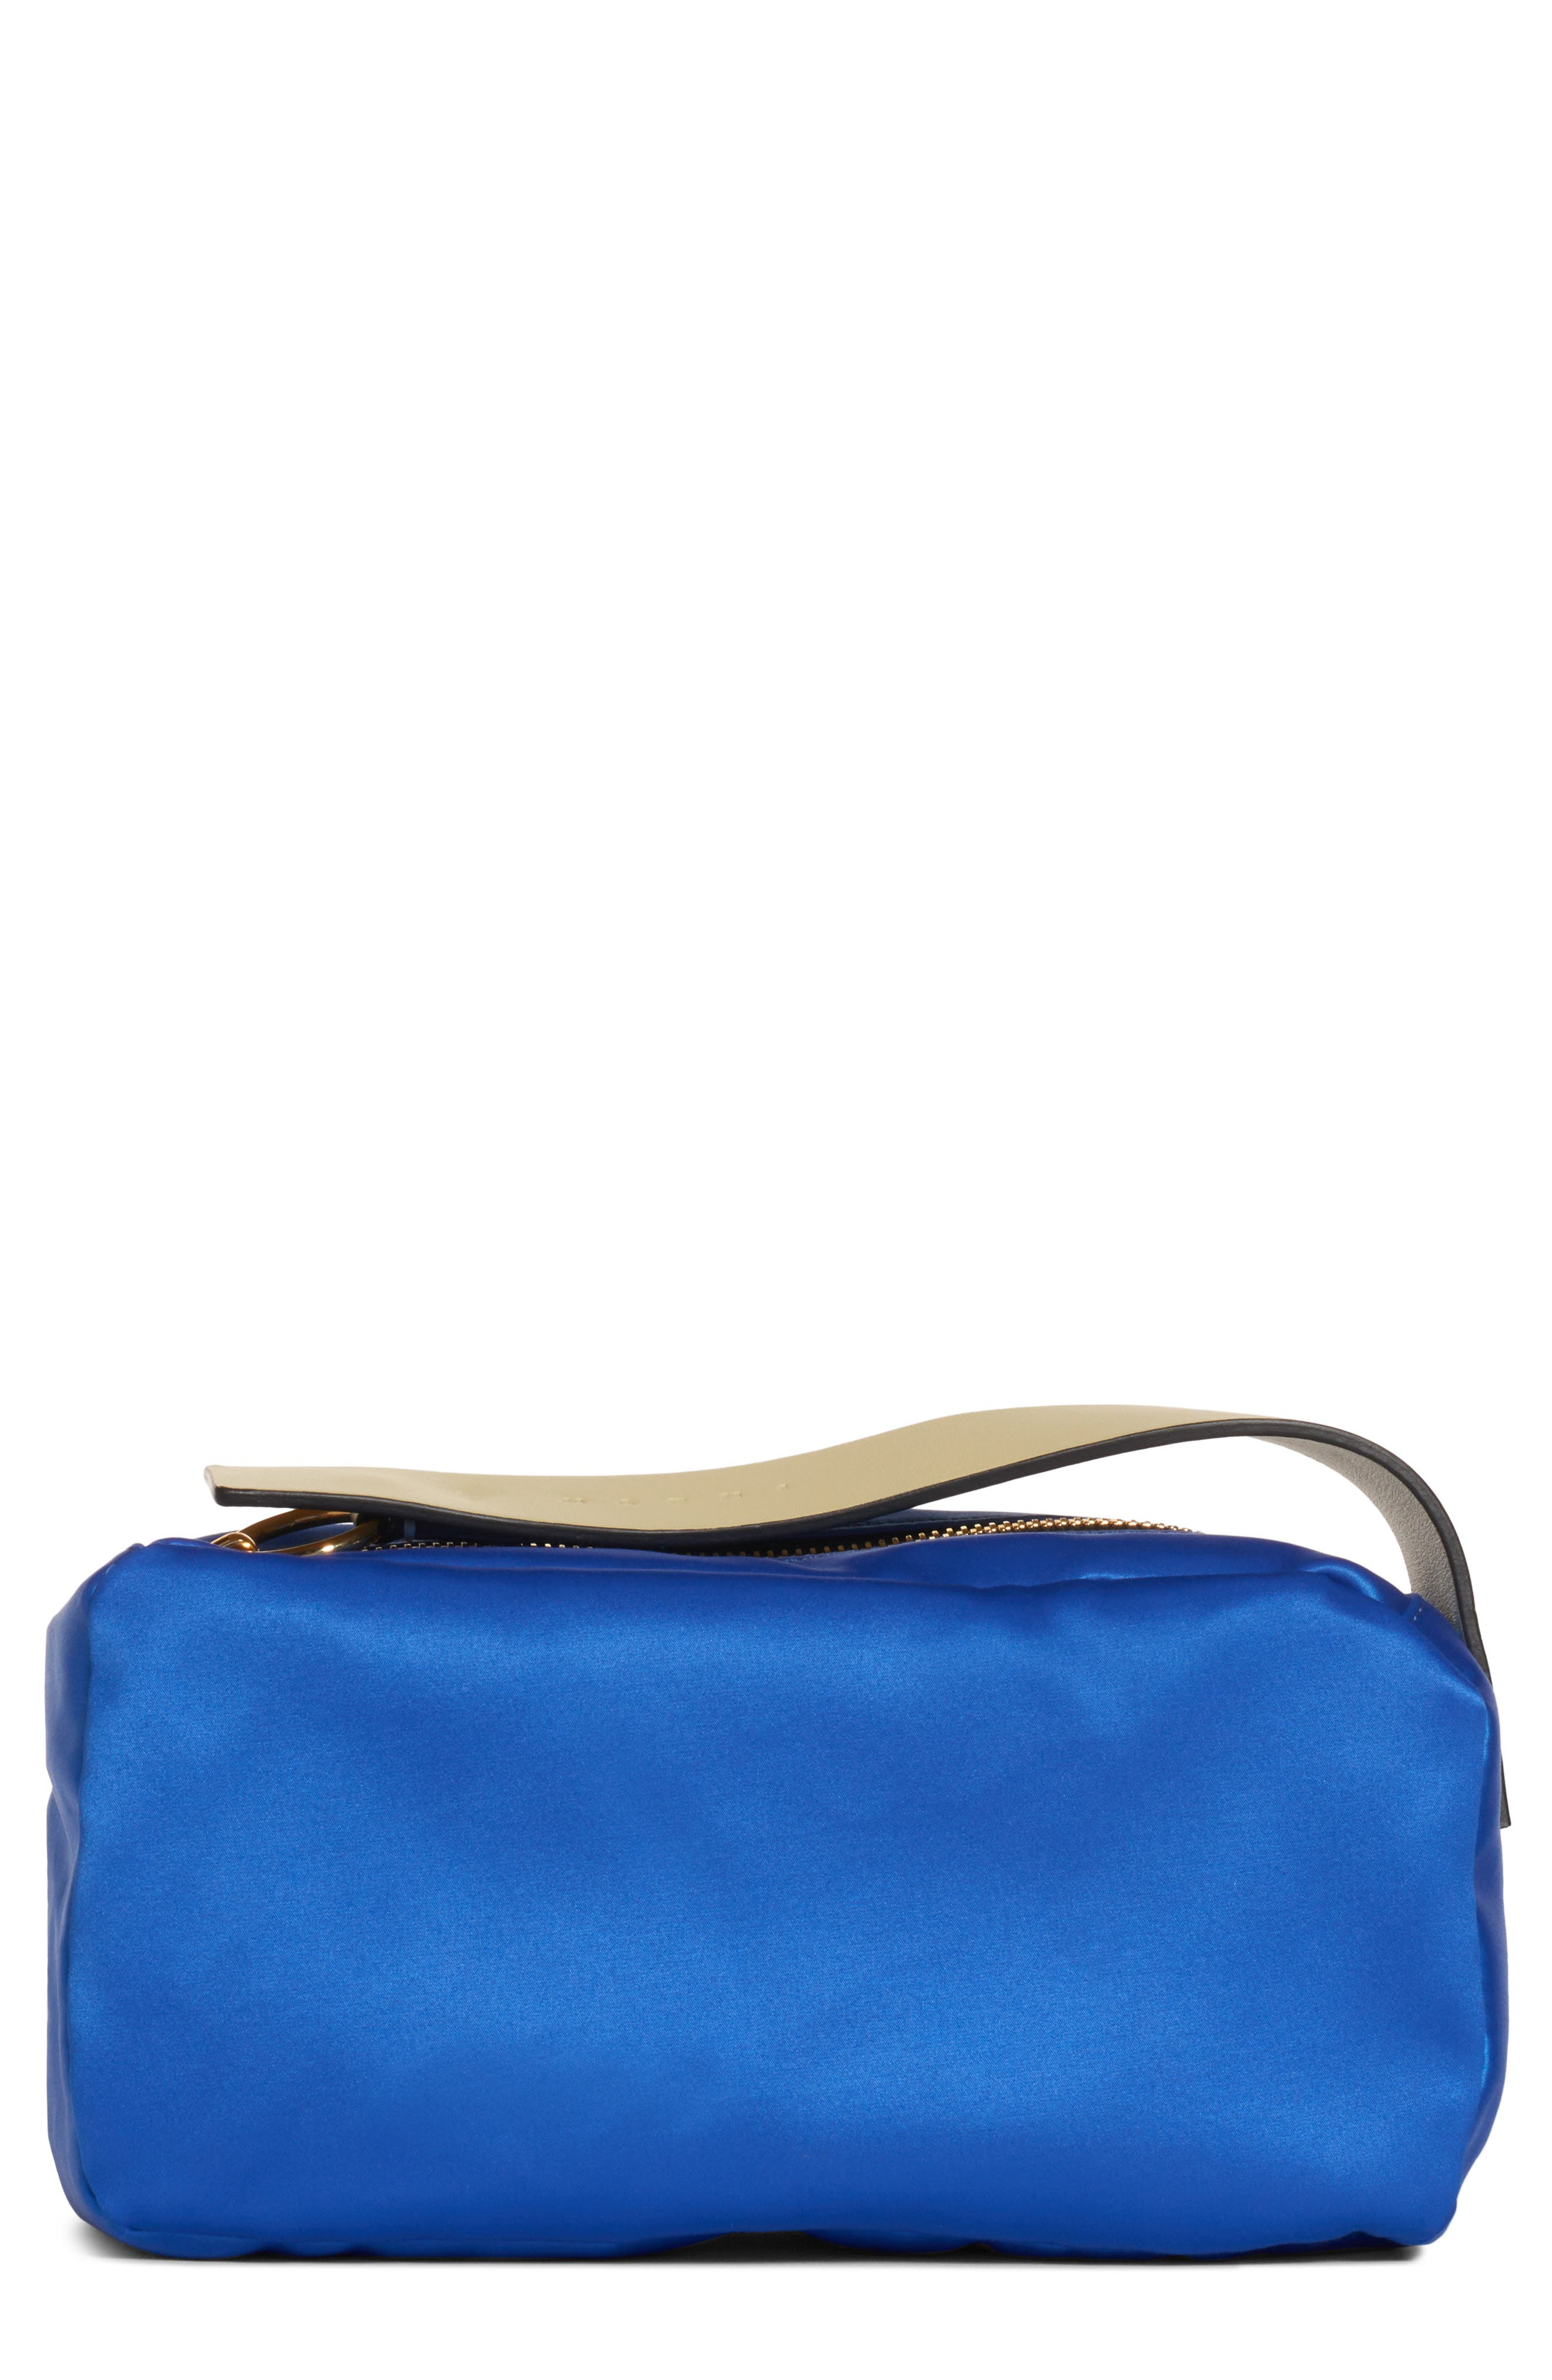 Law Bag Nylon Cosmetics Case in Astral Blue